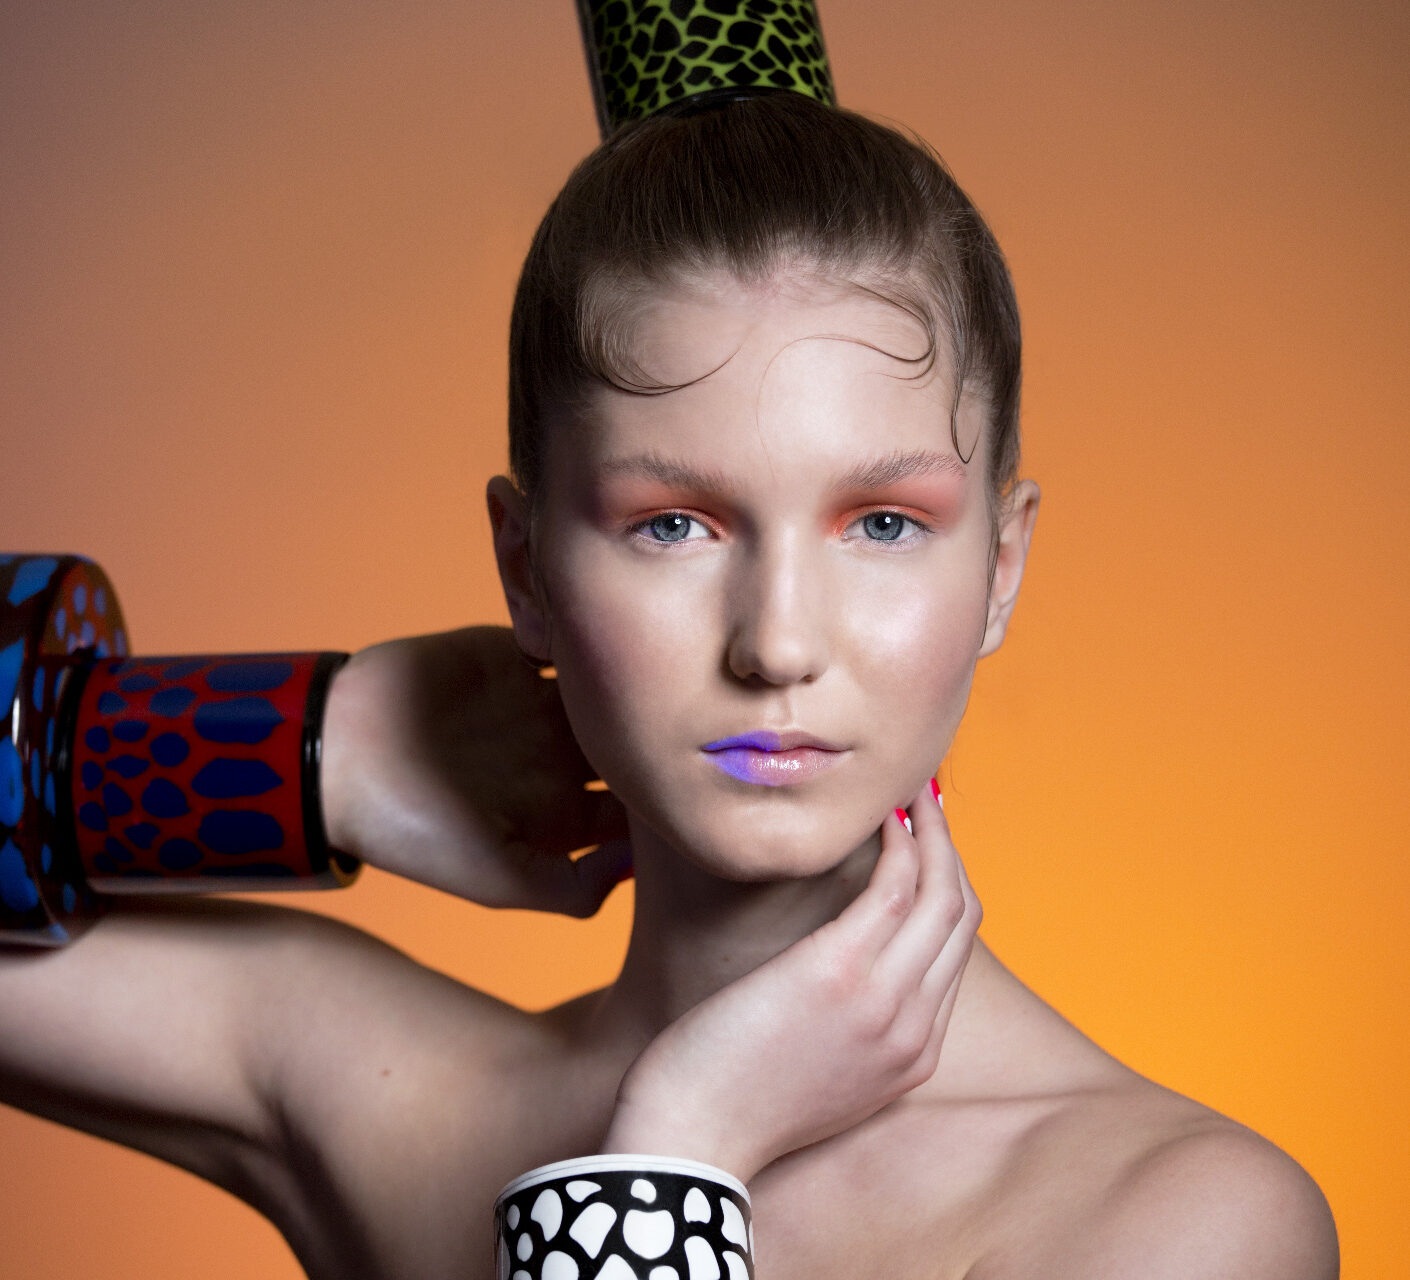 Photo: photographic image photography by Beauty Photographer London Margaret Yescombe, UV lips, Jewellery studio photo-shoot, MUA and hair by Dorota, statement bracelet, stacked bracelets, animal pattern, by Liron Kliger Fashion Jewellery Agency Model, orange lit background